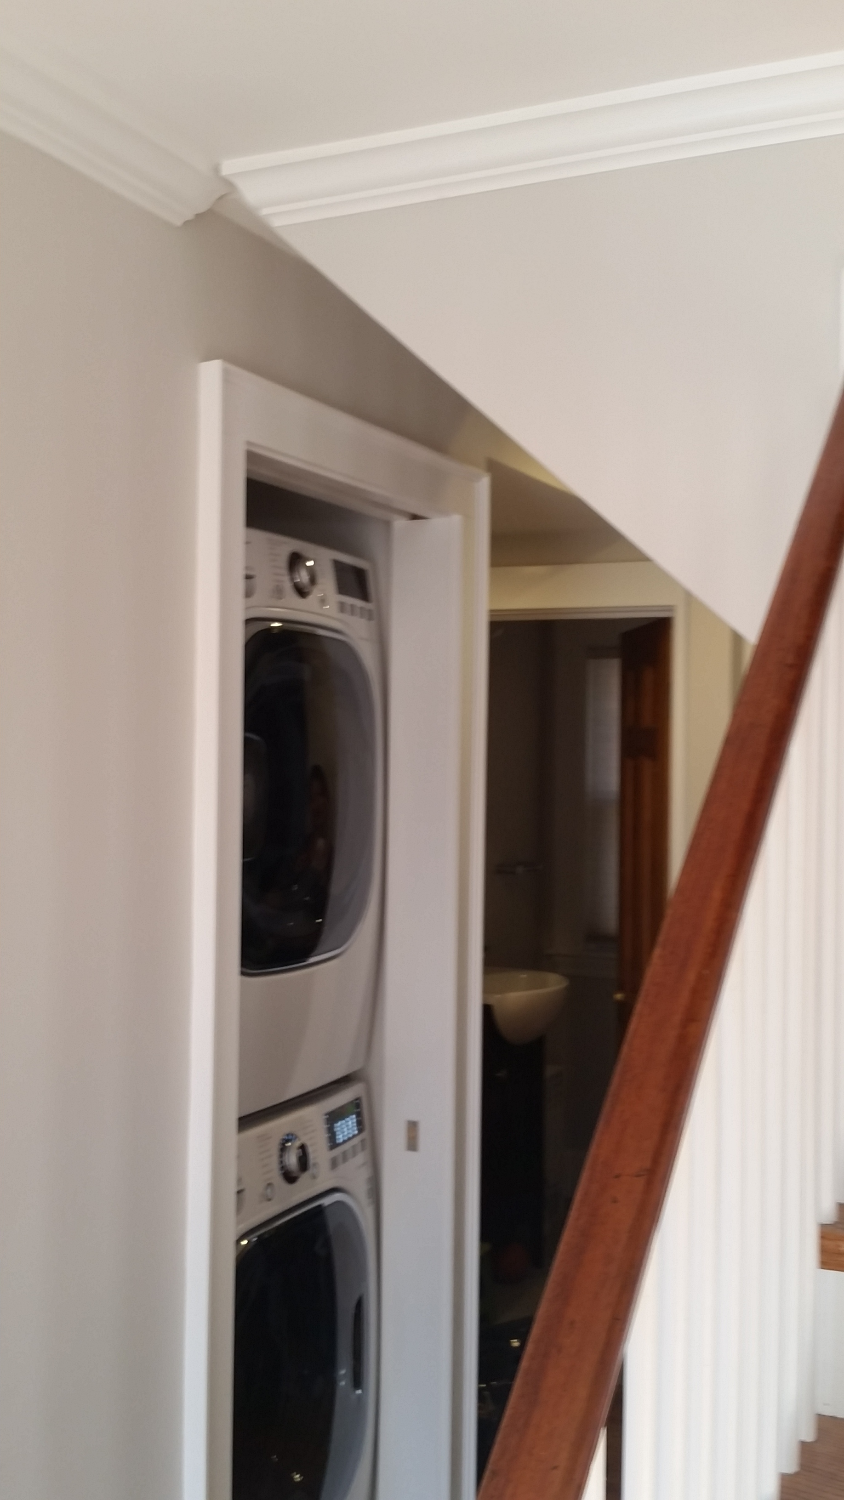 LG Laundry installed in a closet